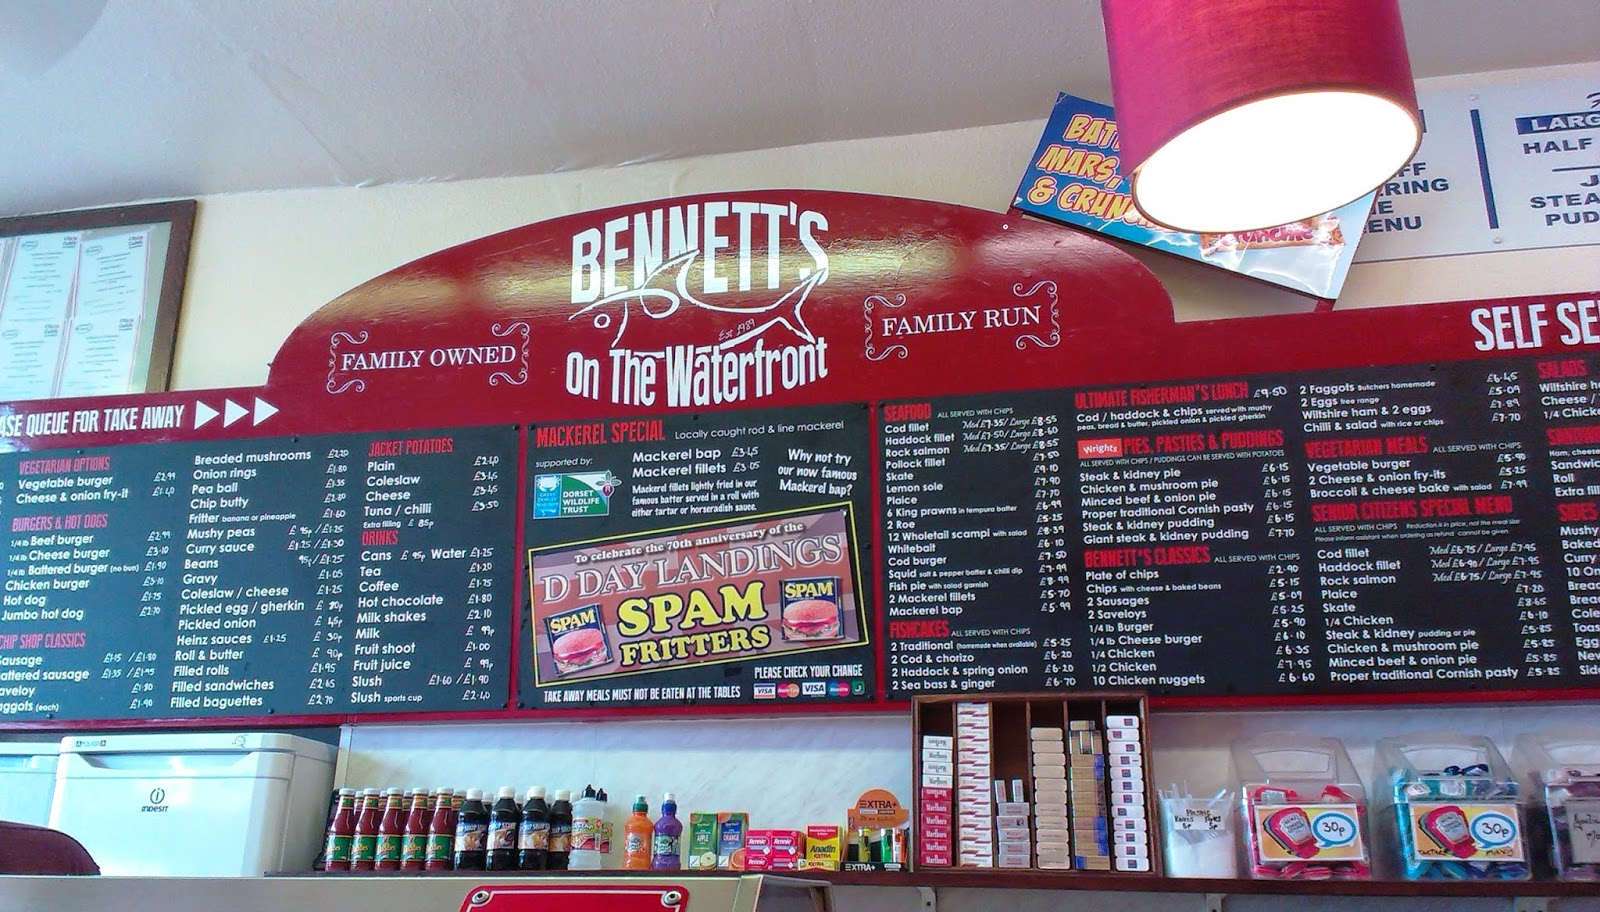 Weymouth Bennett's on the Waterfront Menu